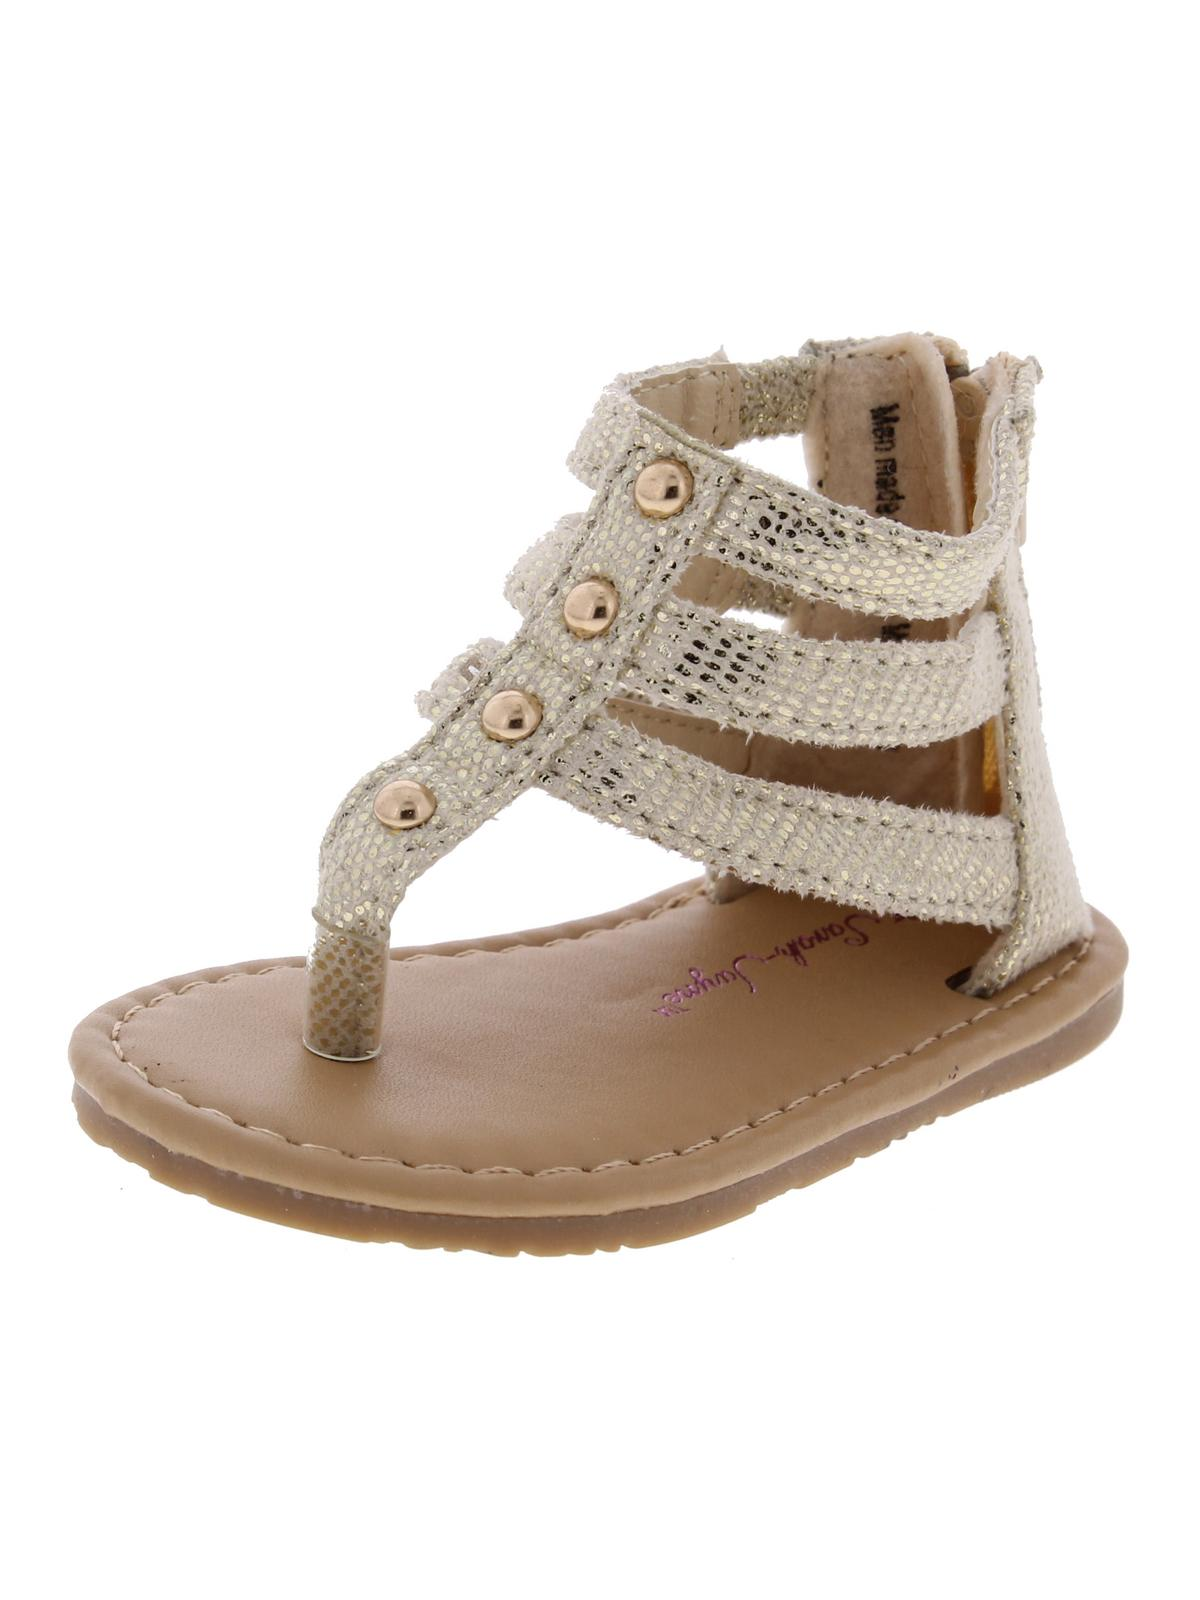 Gladitor Open Toe Casual Sandals